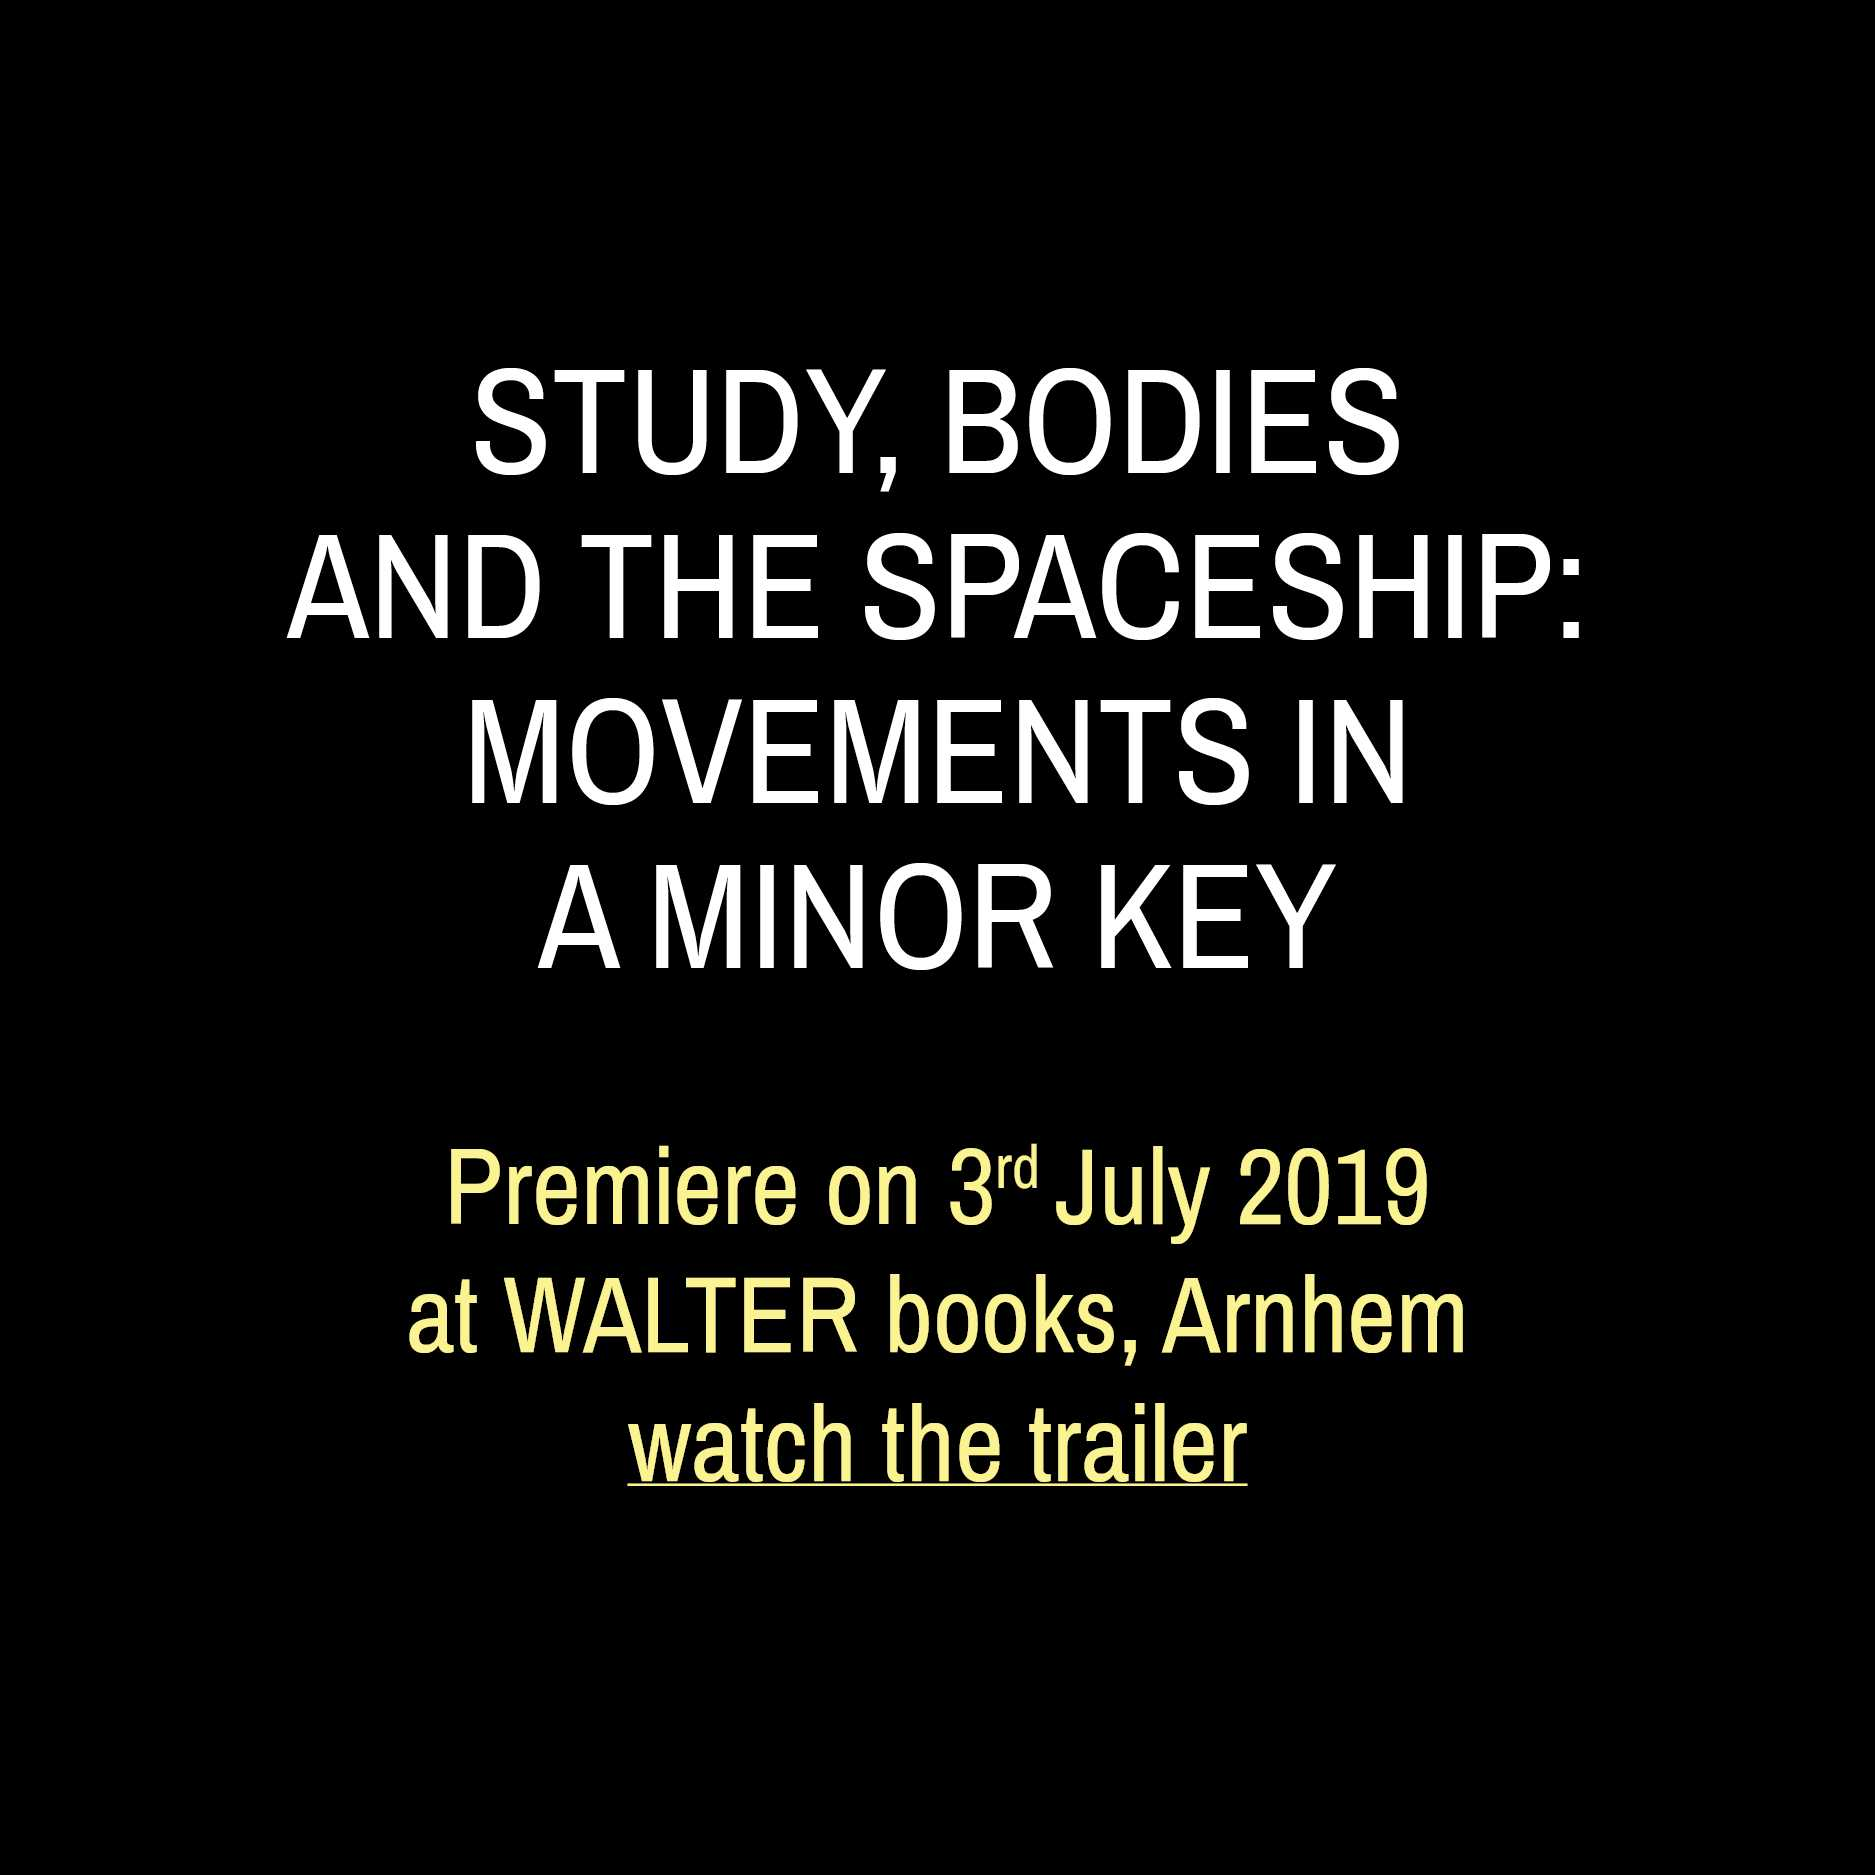 Study, Bodies and the Spaceship: Movements in a Minor Key  ~ DAIcumentary to be premiered on July 3rd, 2019 at WALTER books in Arnhem, at the occasion of a site-visit, as part of the so-called accreditation, a governmental quality standard inquiry. Watch the trailer here.